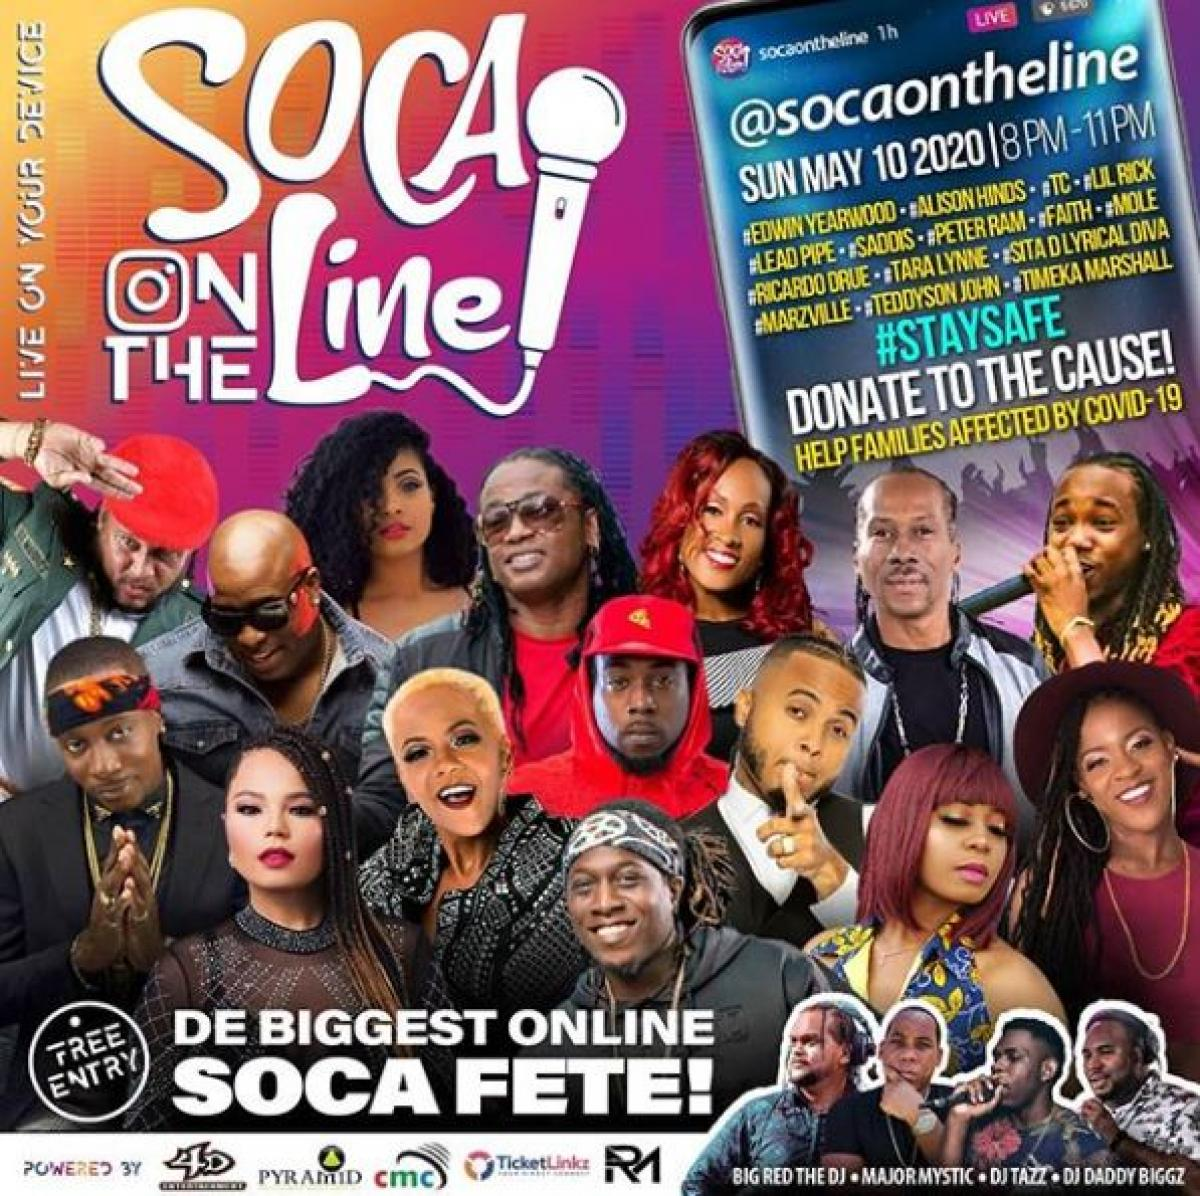 Soca On The Line flyer or graphic.